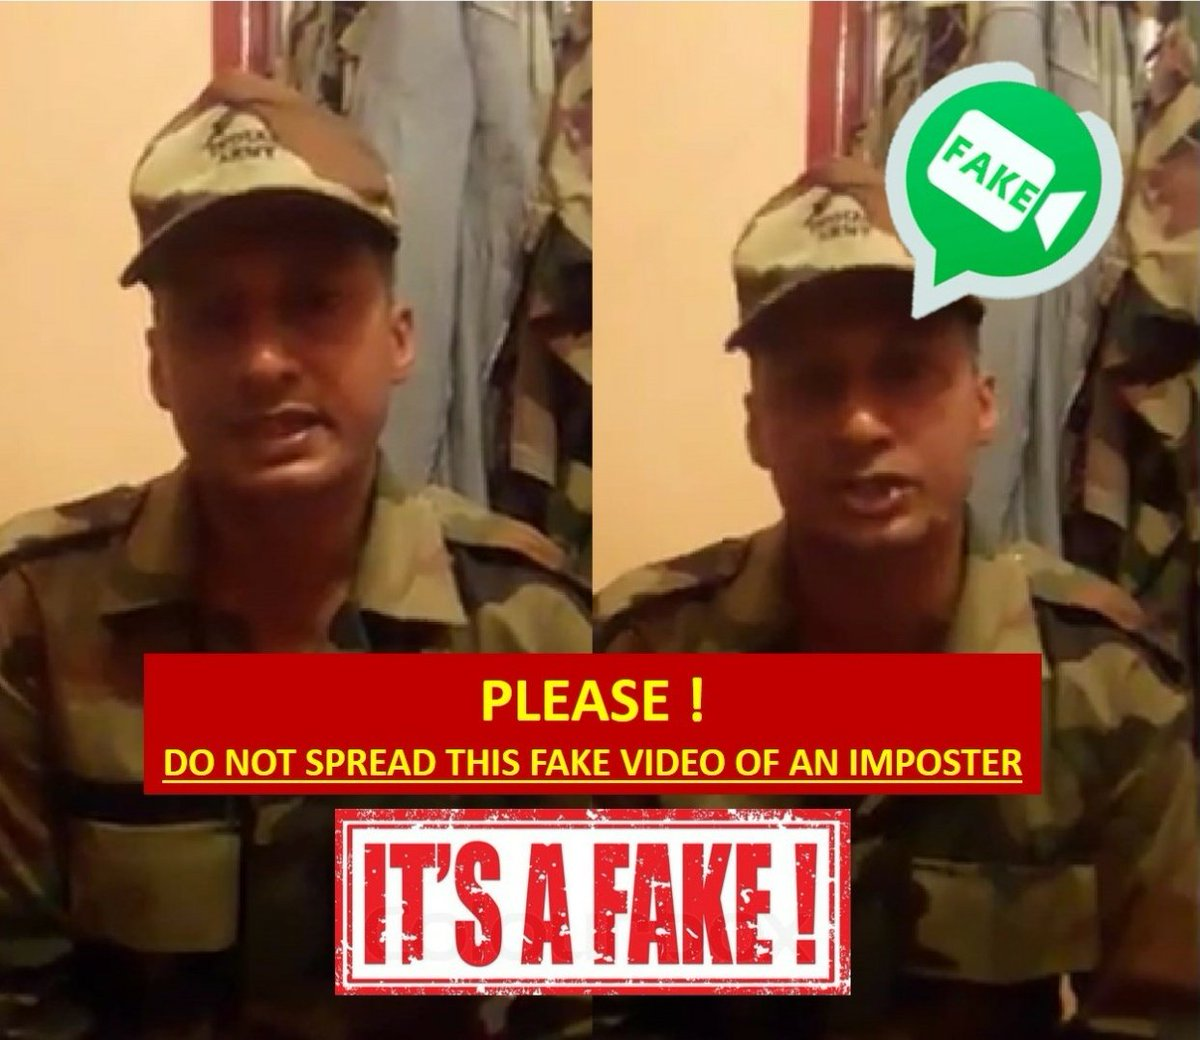 Beware, fake news, Kerala, flood, impostor, Army, uniform, spread, disinformation, NM Fact Checker, Fact Check, NewsMobile, Mobile News, India